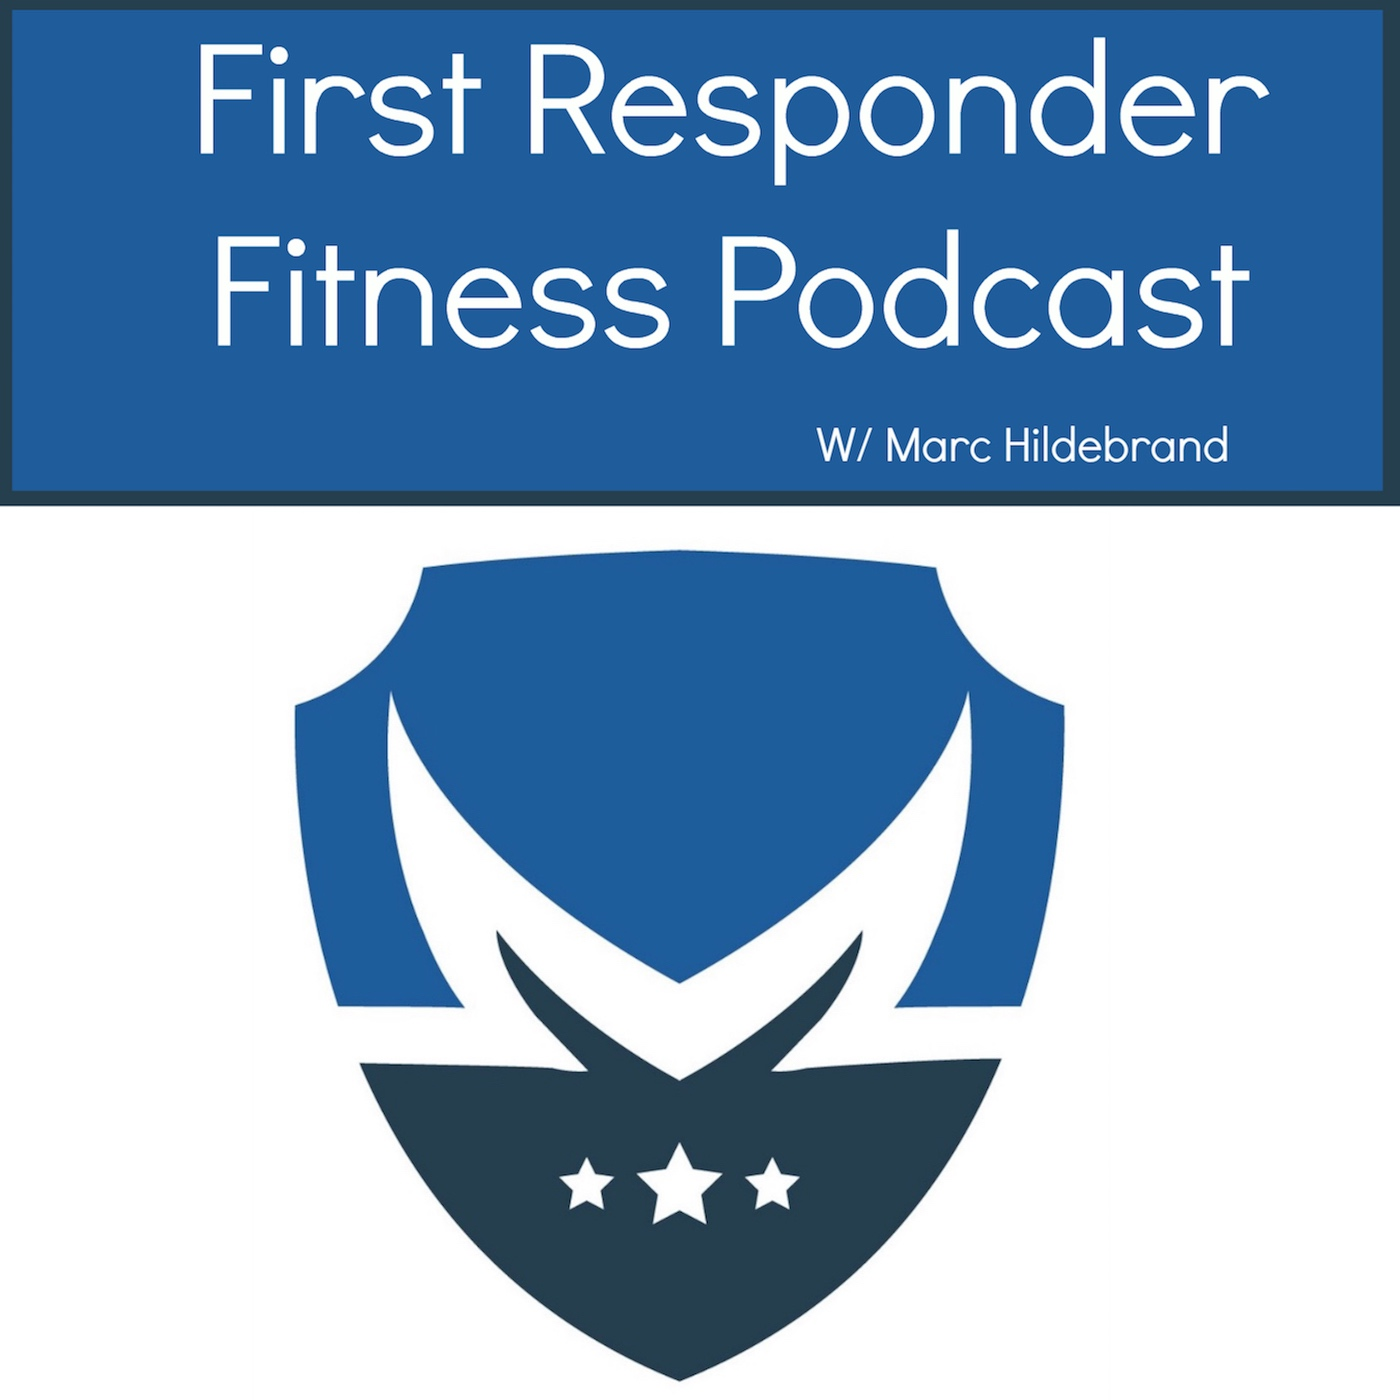 The First Responder Fitness Podcast: Online Fitness and Nutrition Support